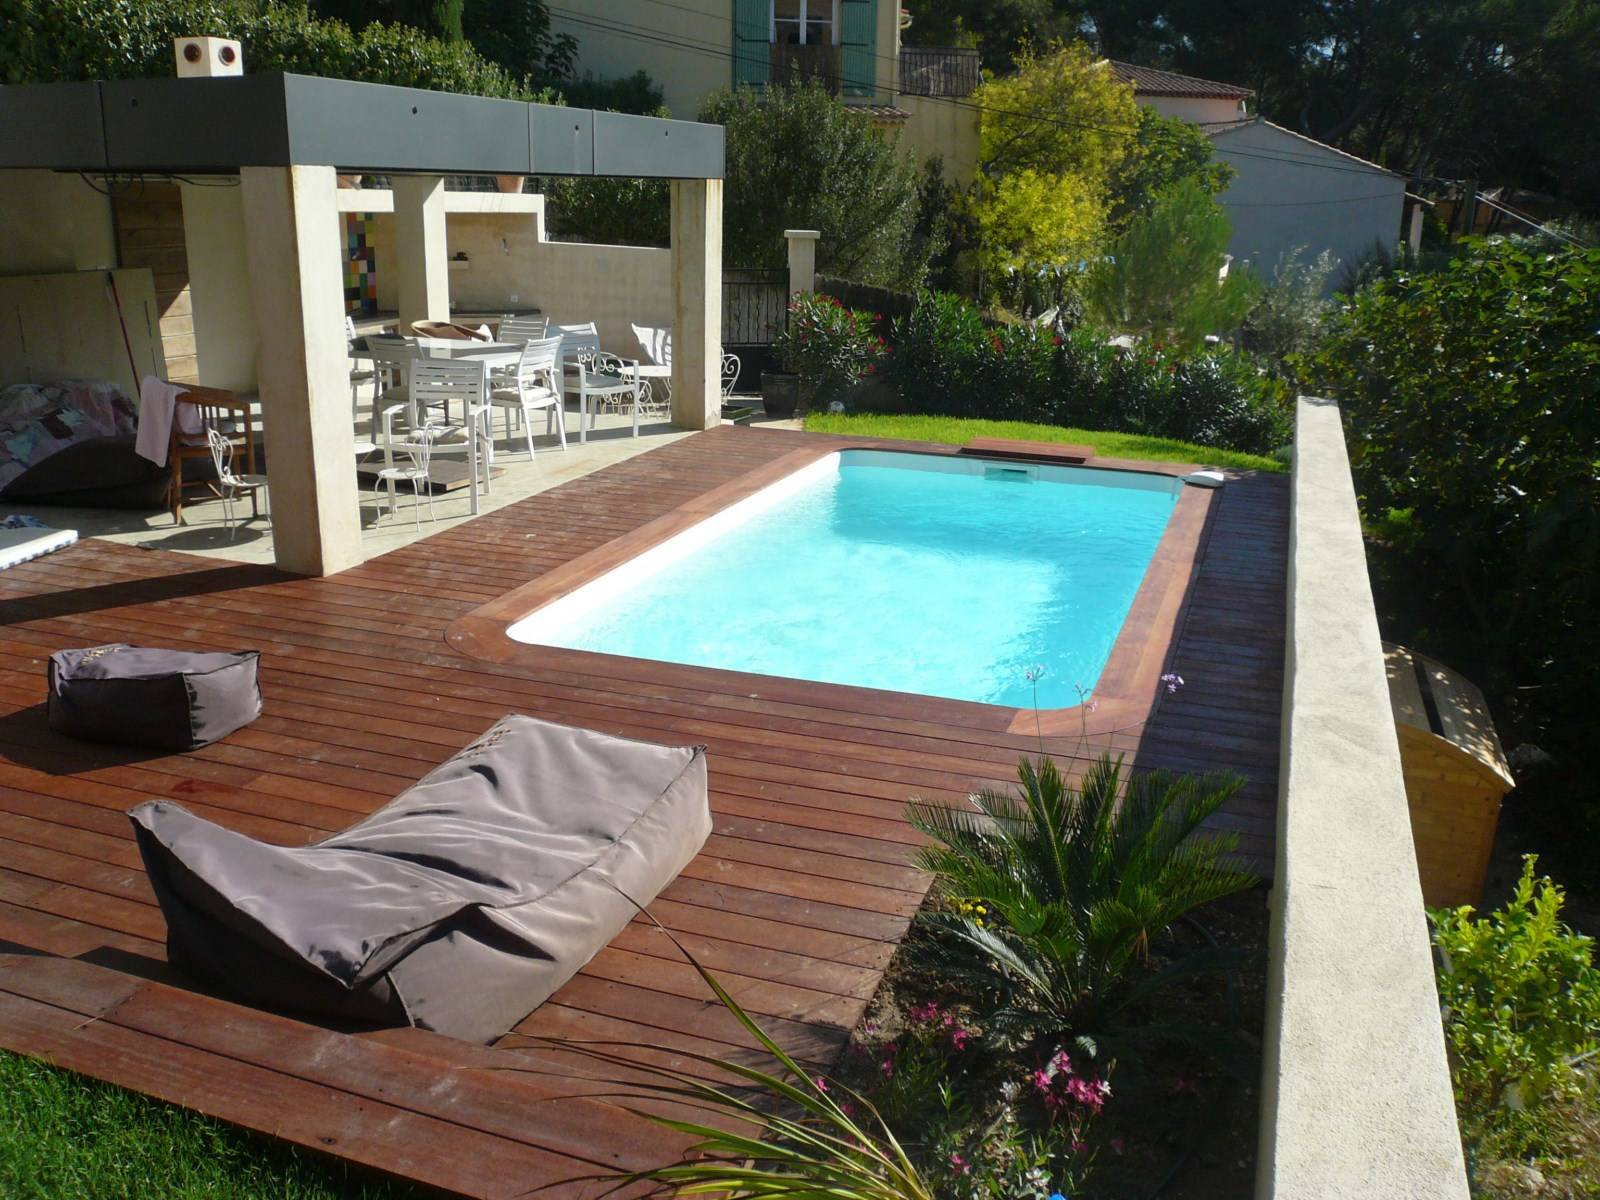 Faire installer une piscine coque france piscine composite for Tarif piscine coque